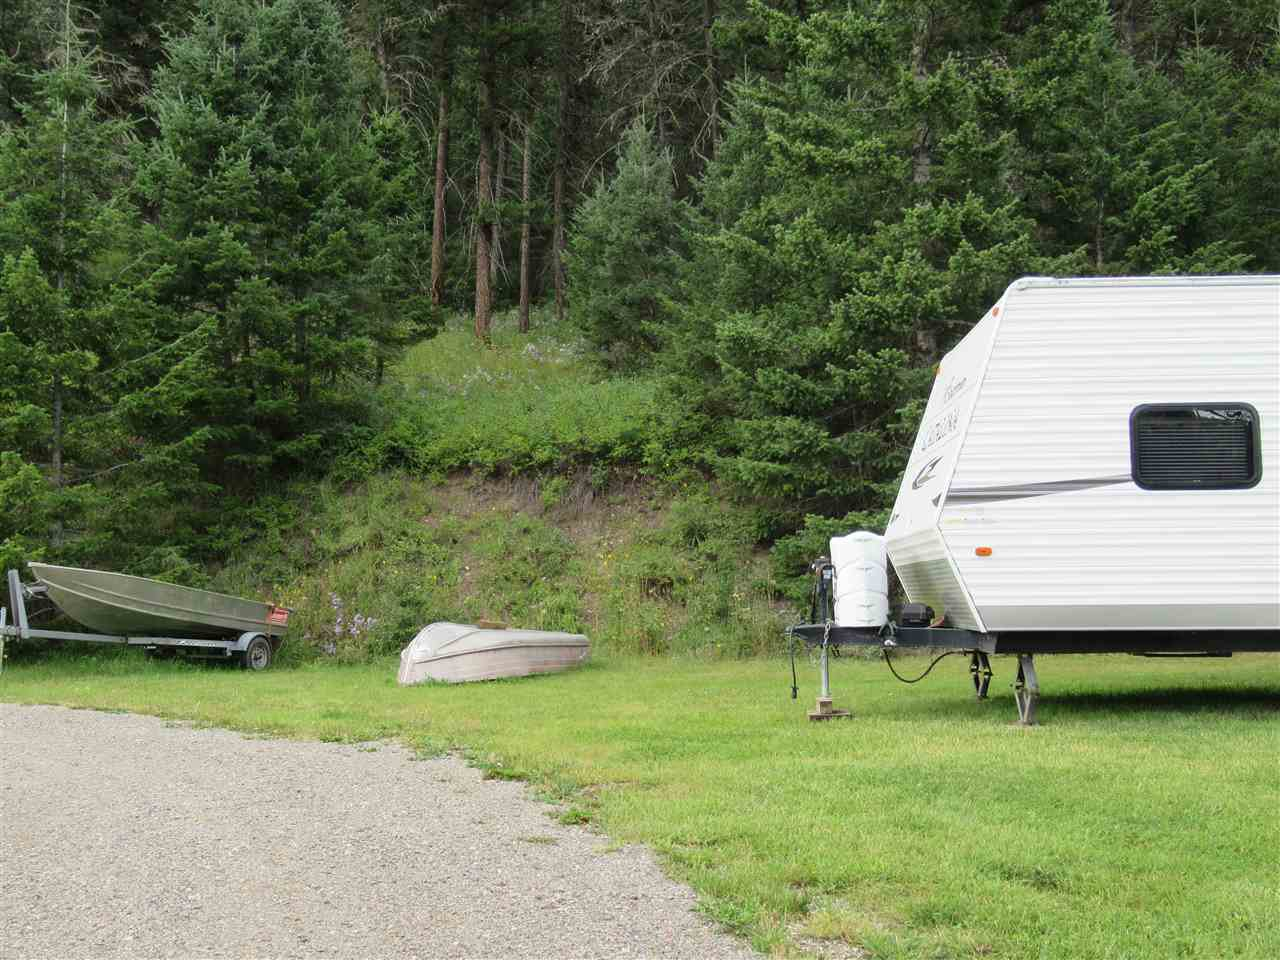 Photo 24: Photos: 3035 FIRDALE Drive in Williams Lake: Williams Lake - Rural North House for sale (Williams Lake (Zone 27))  : MLS®# R2484738